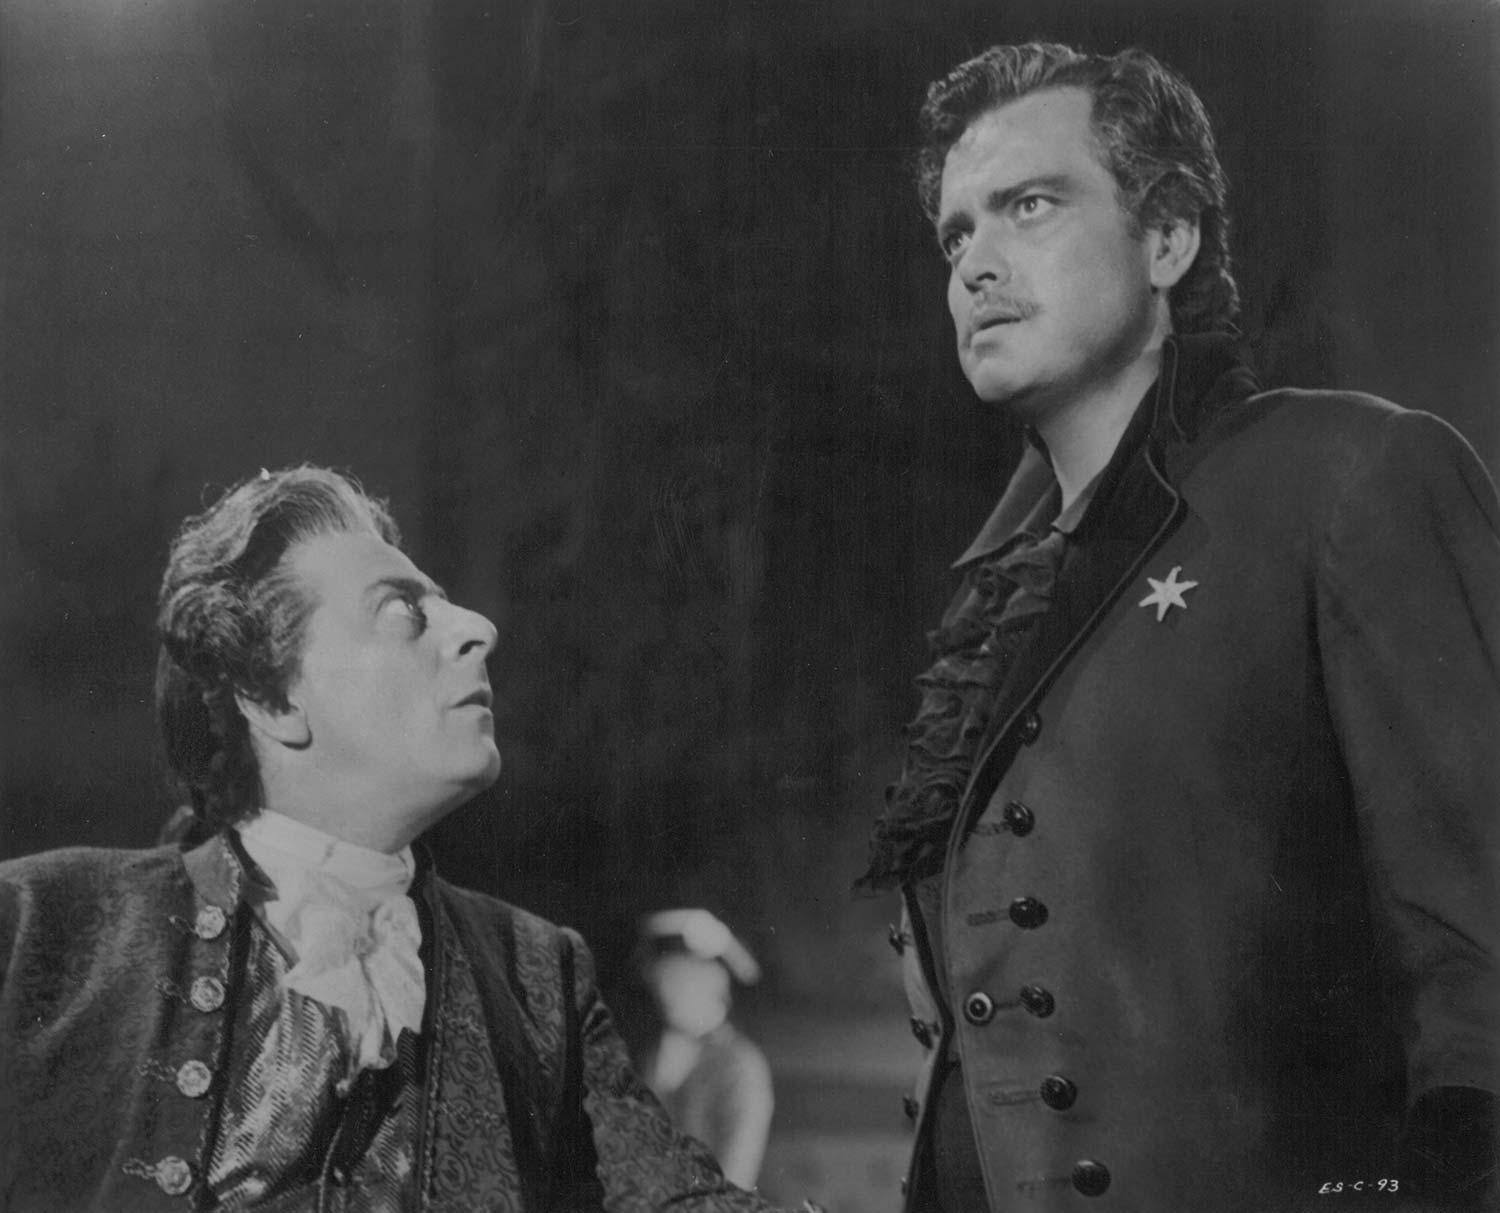 A scene from Black Magic (directed by Gregory Ratoff, 1949). Dr. Mesmer (Charles Goldner, left) hypnotizes Cagliostro (Orson Welles, right). Courtesy the University of Michigan Library (Special Collections Library)